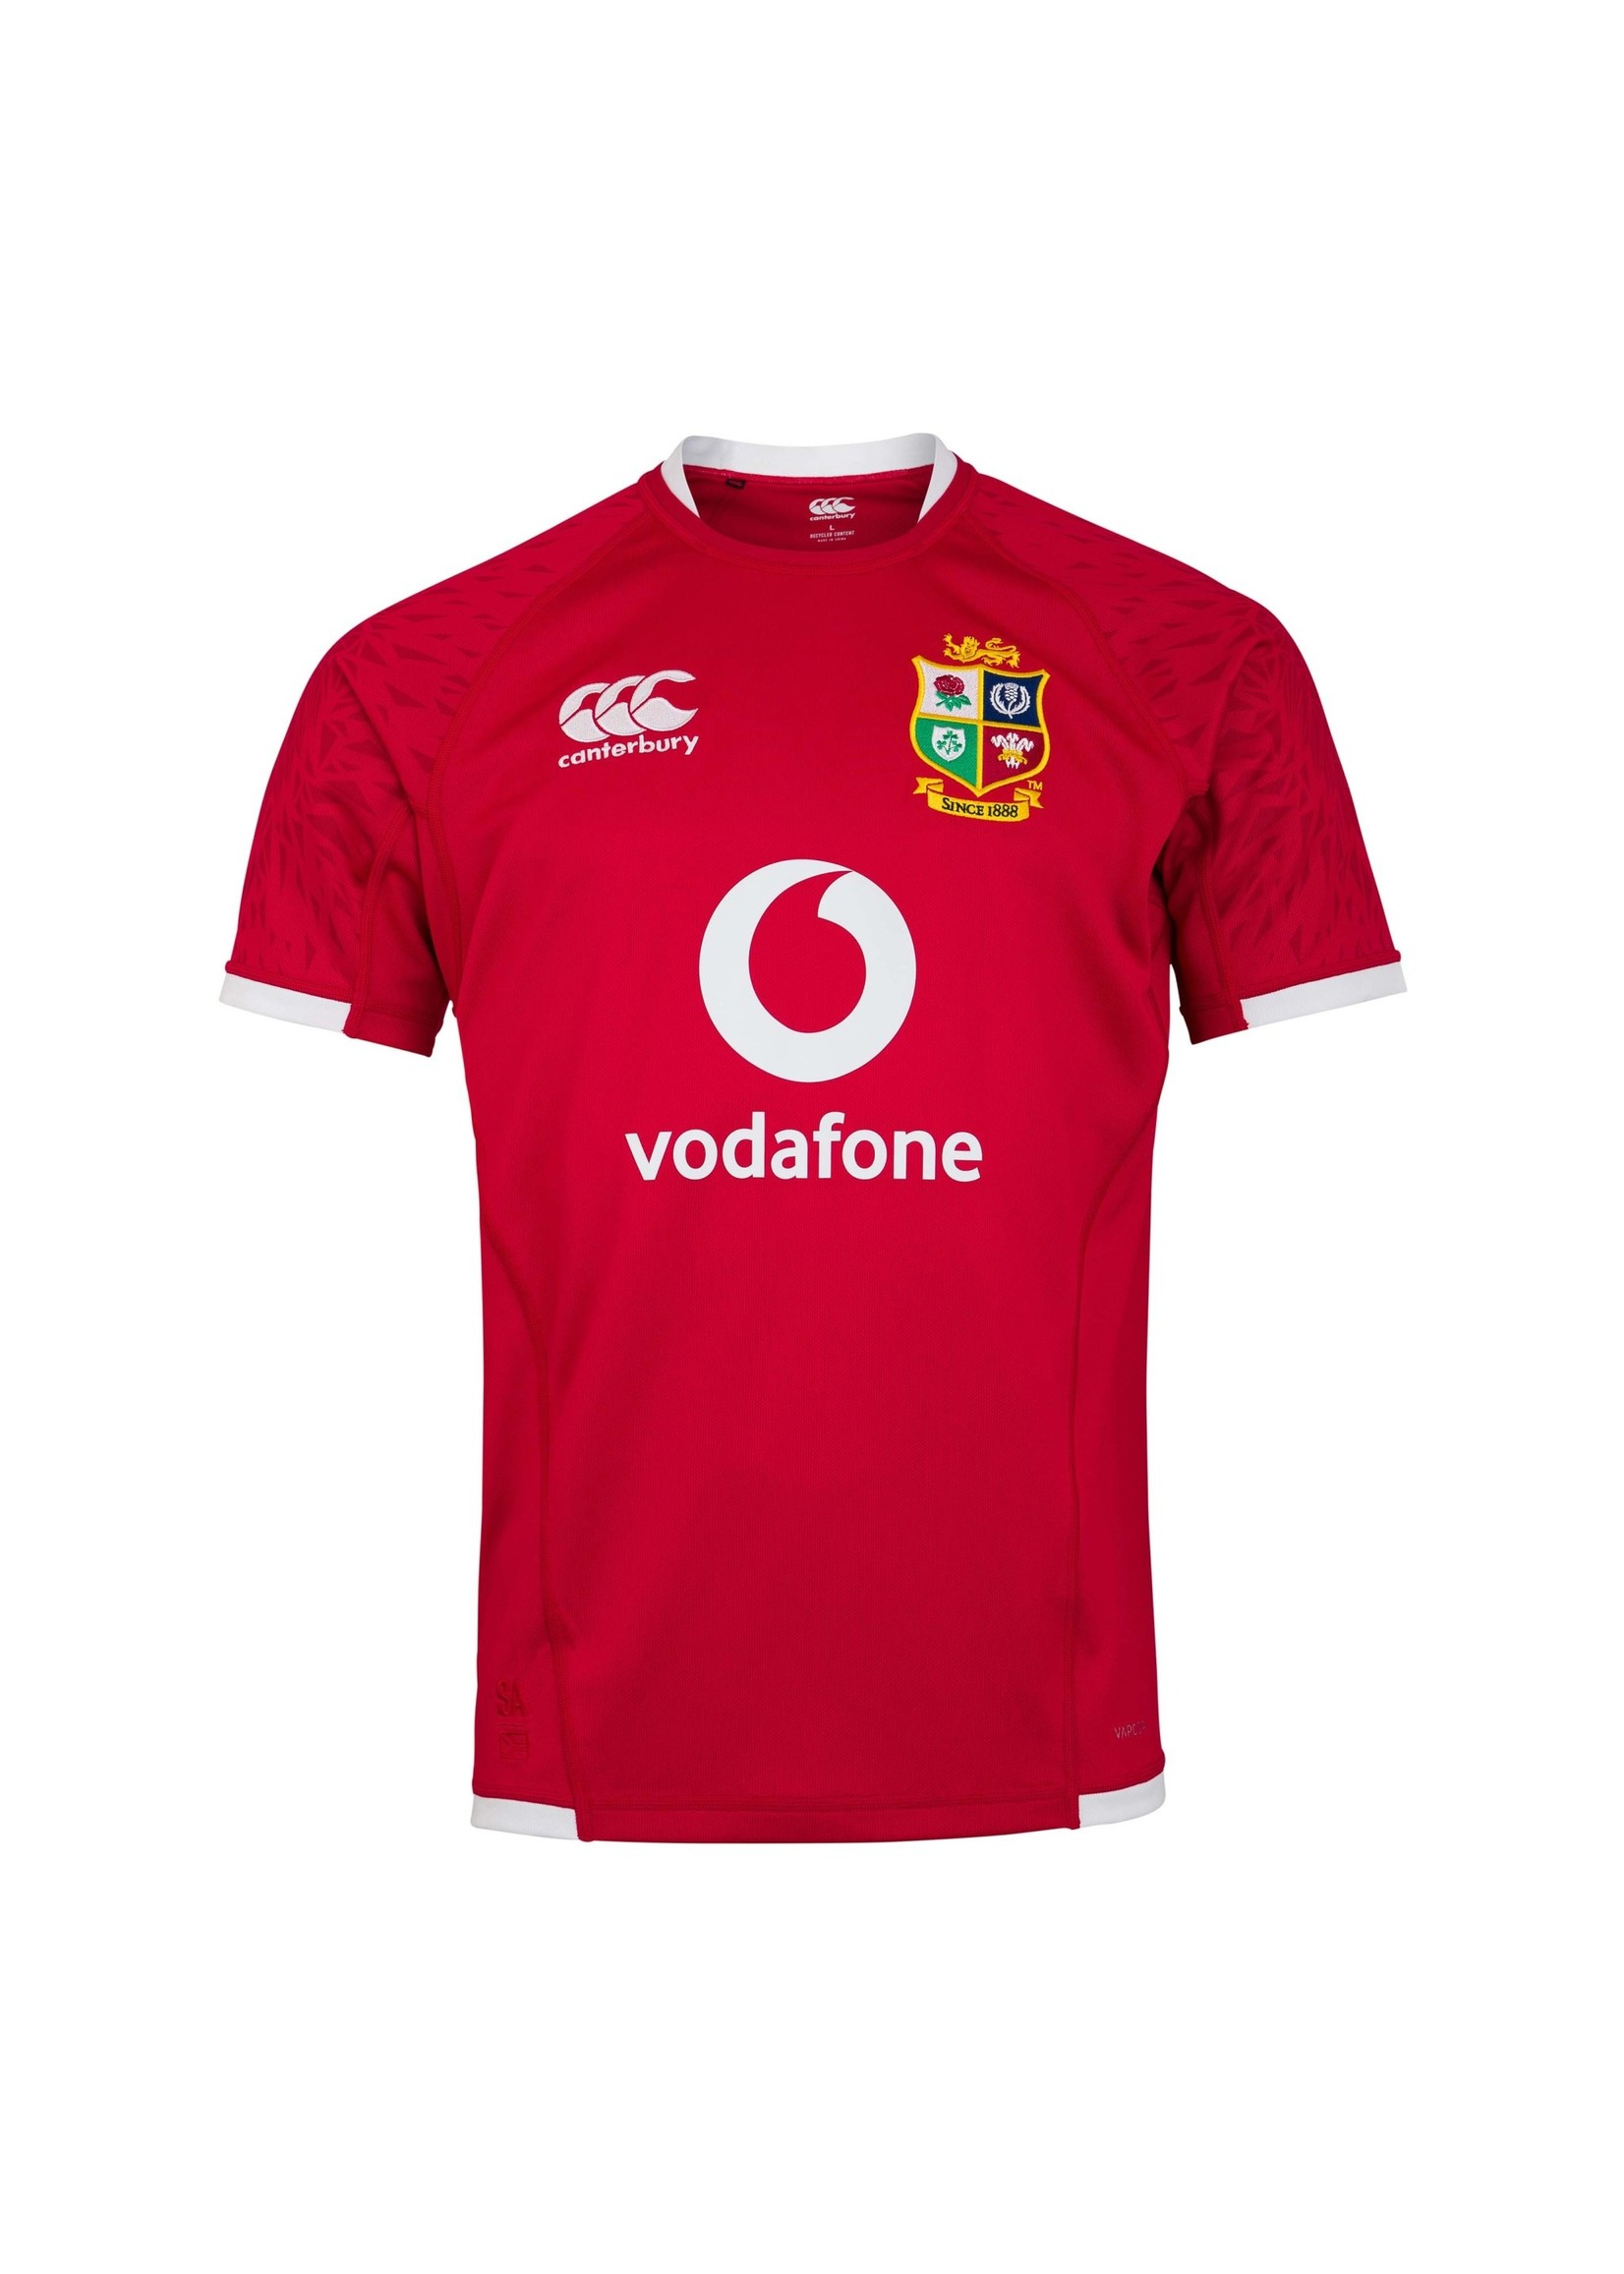 Canterbury British & Irish Lions - Mens Pro Jersey (2021) - Red